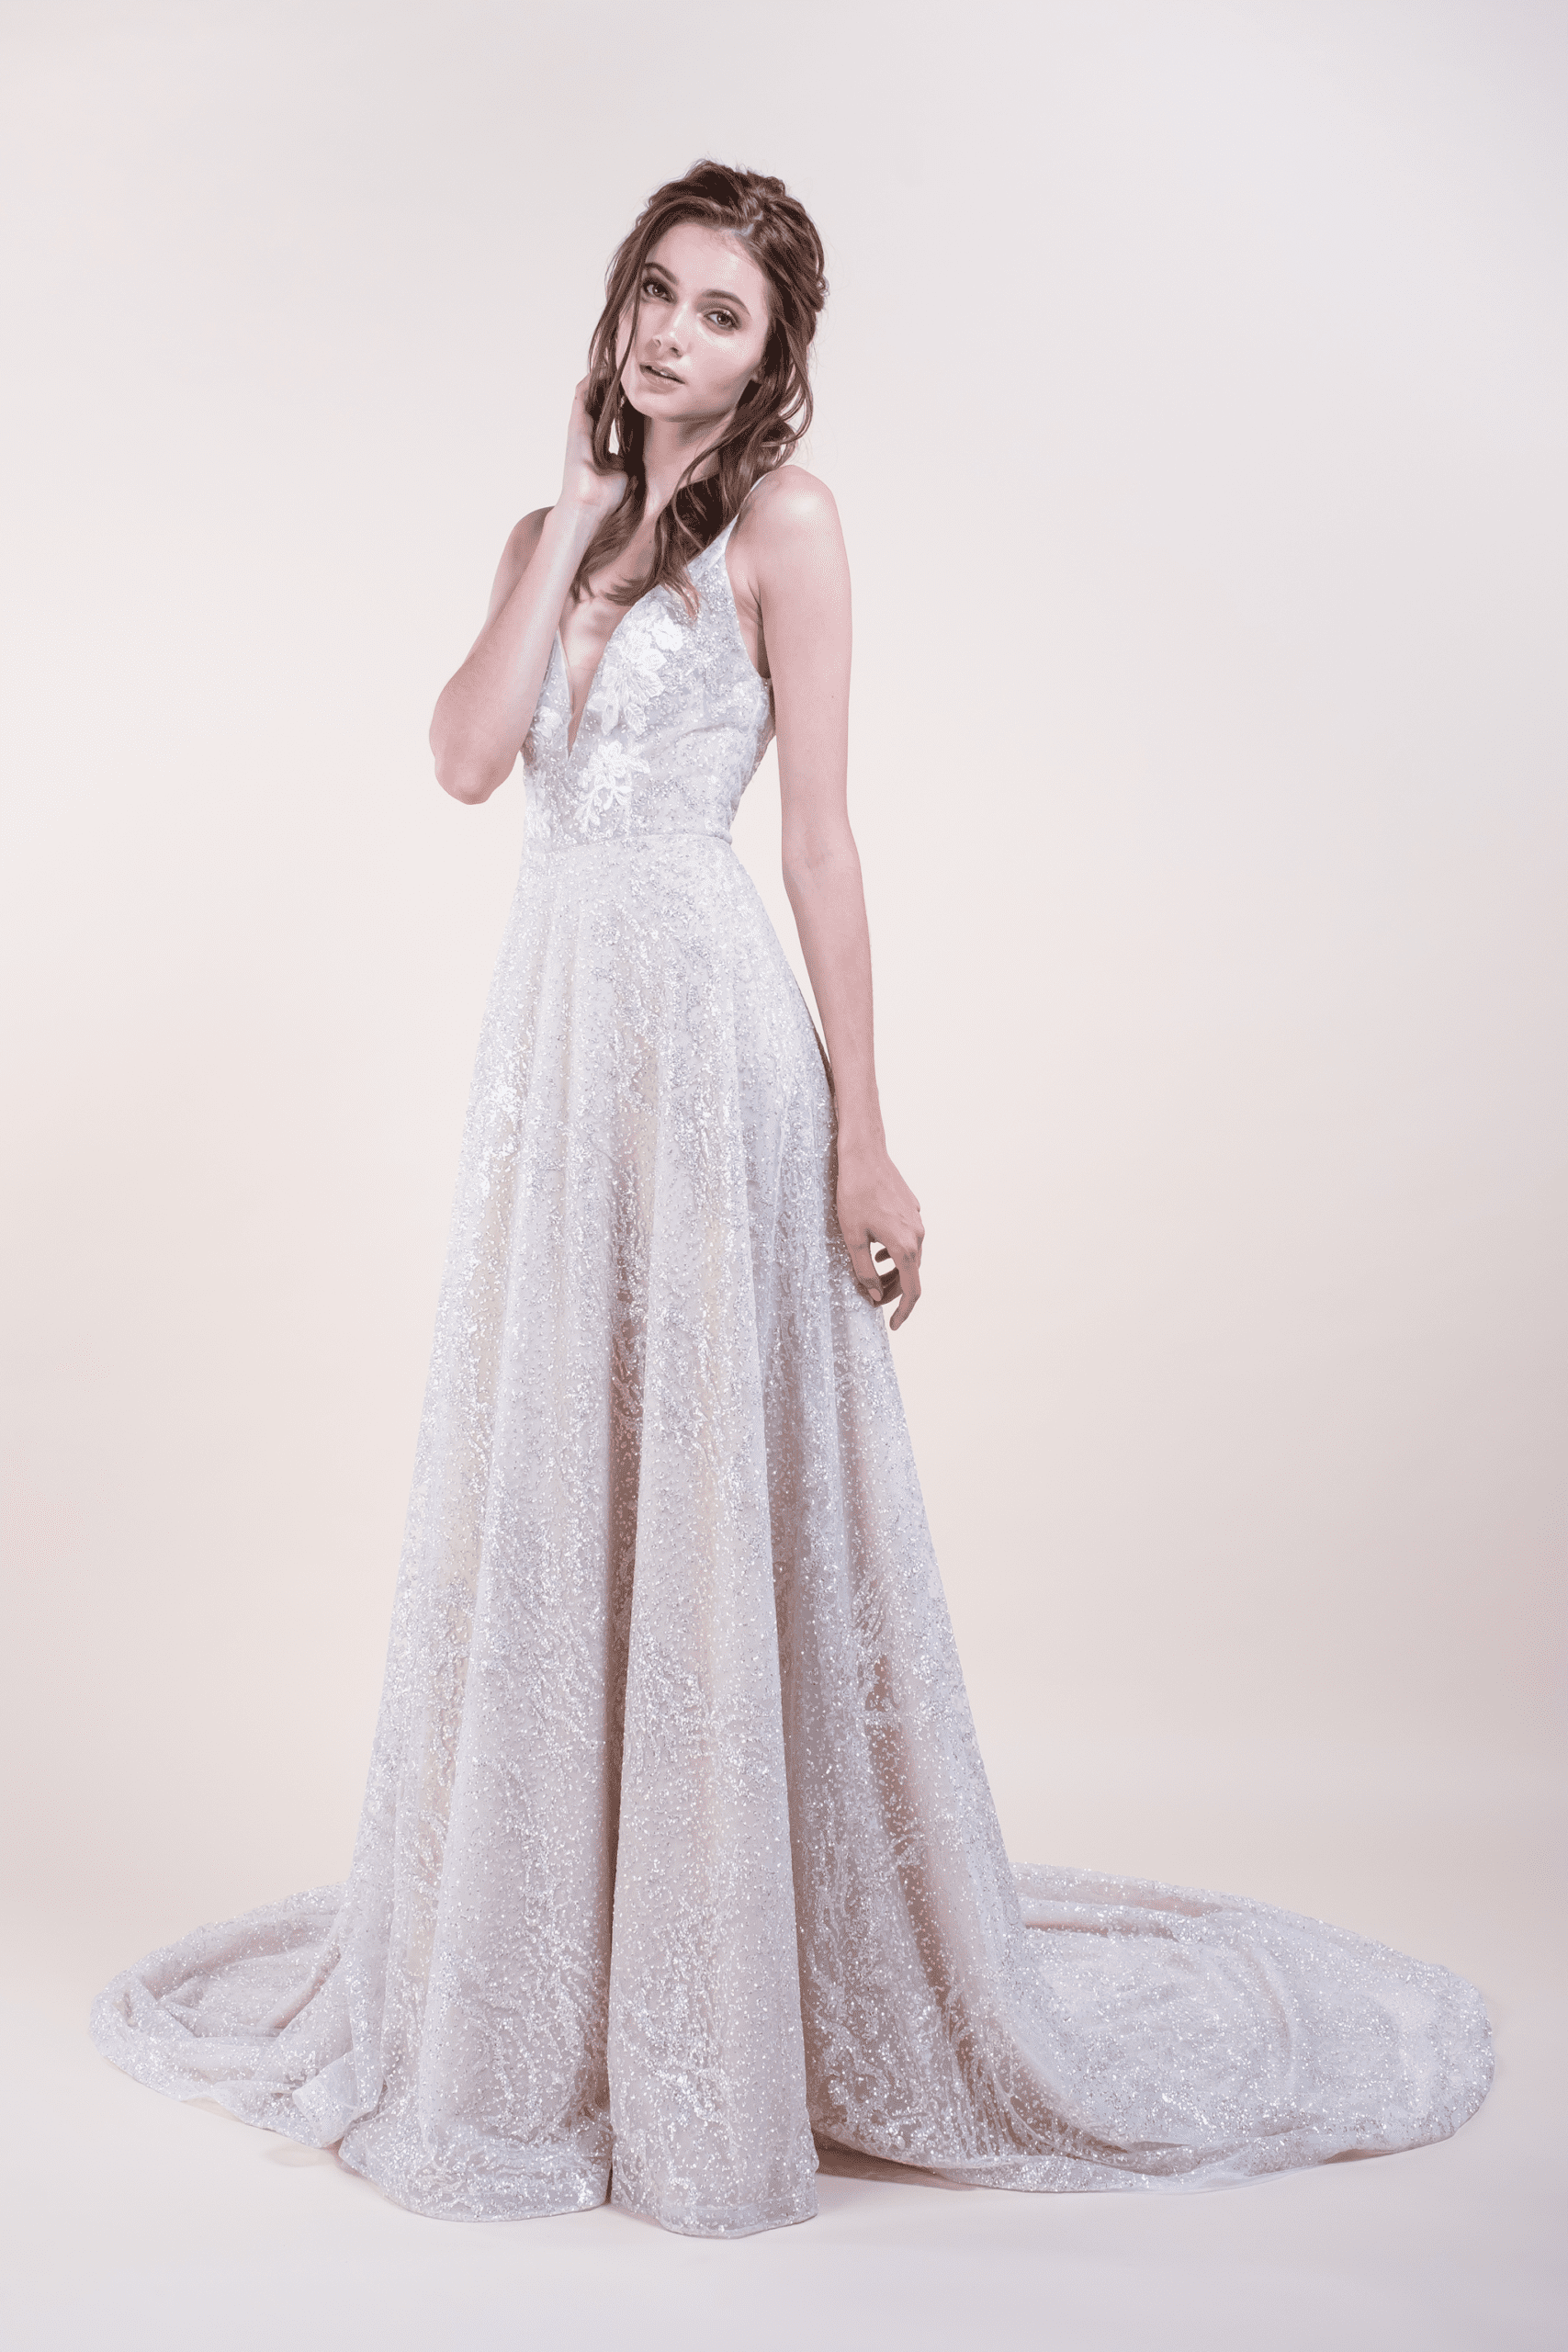 Astrid-affordable-Evening-Gown-for-rent-in-Singapore